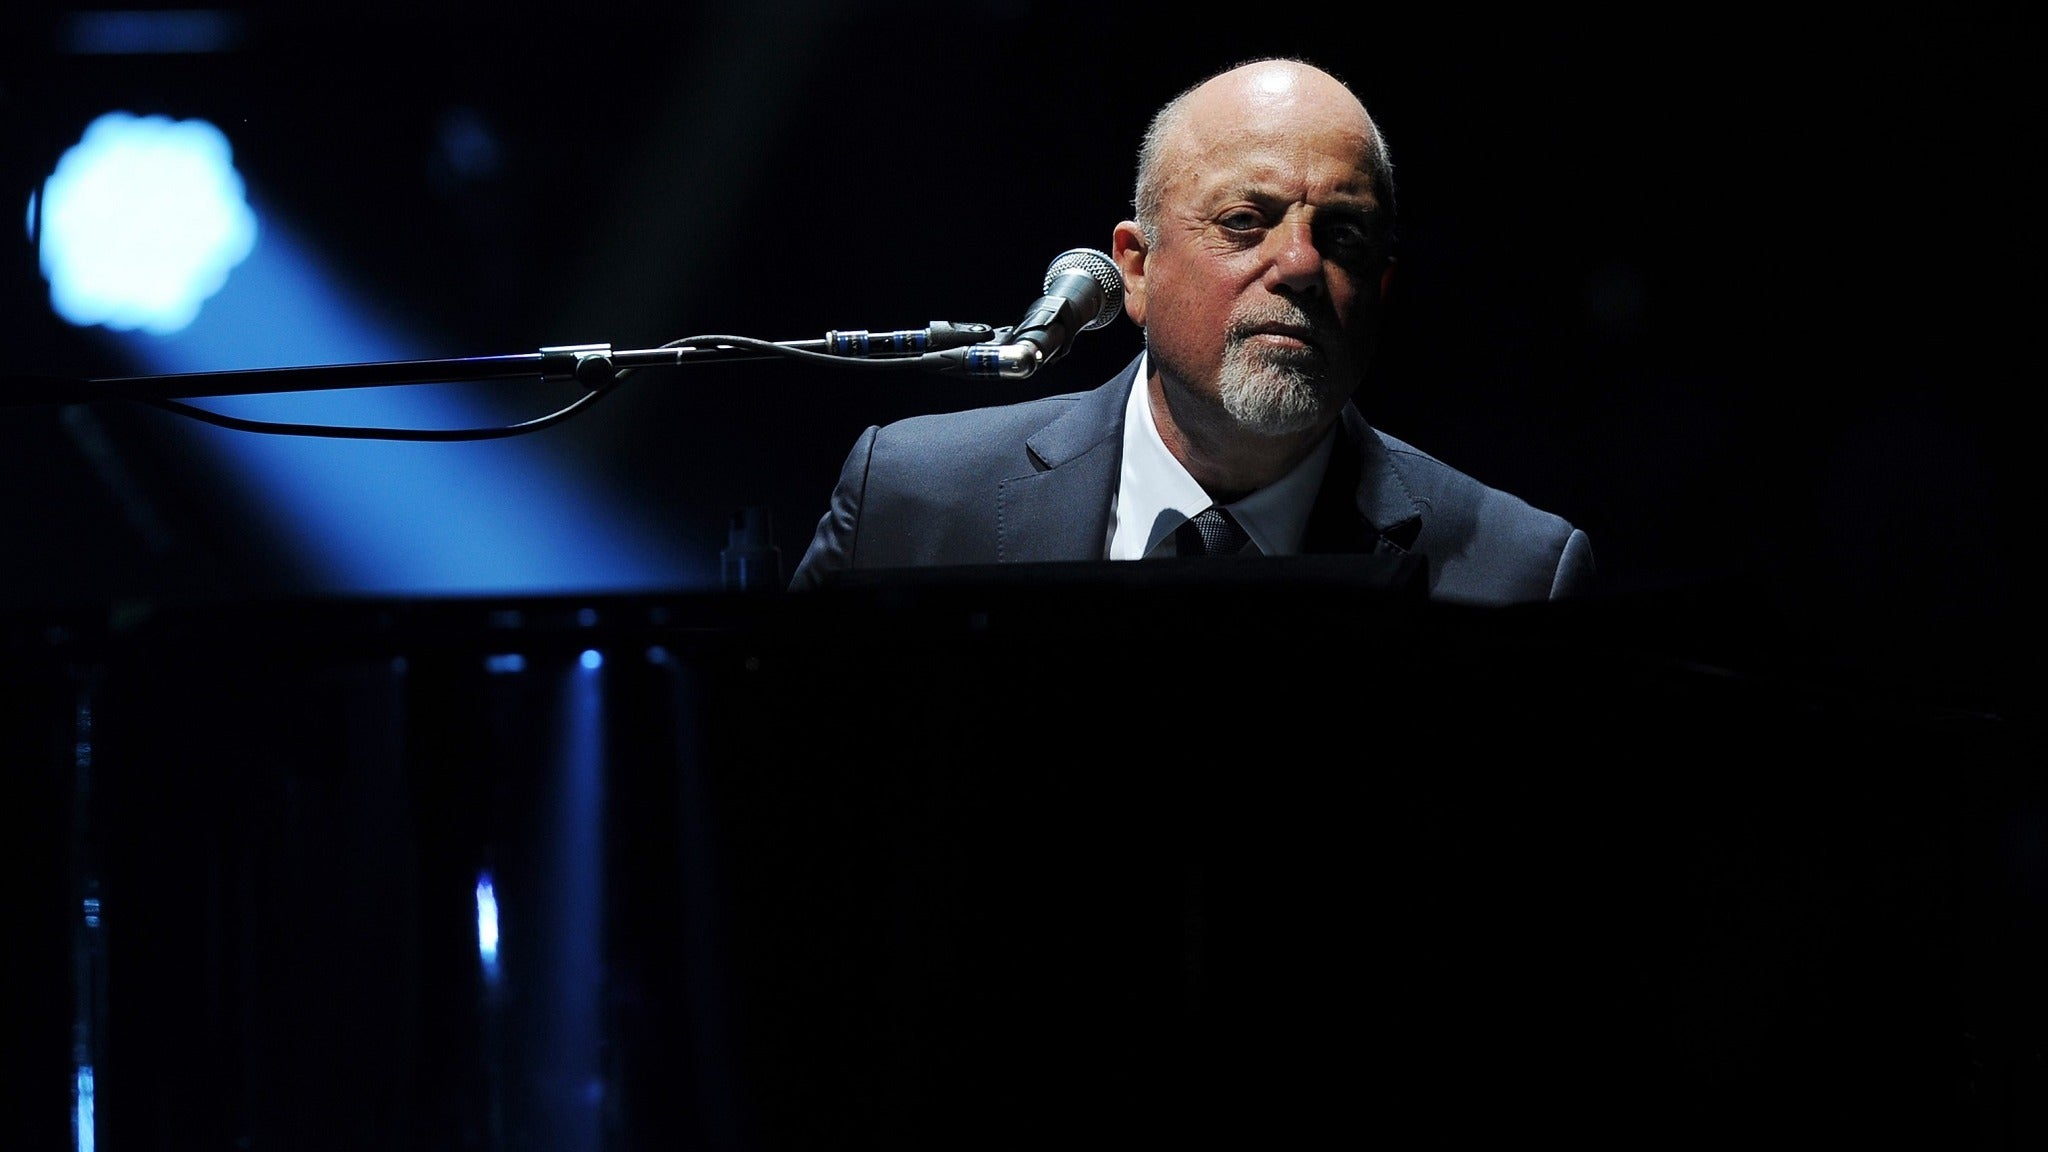 Billy Joel at BB&T Center - Sunrise, FL 33323